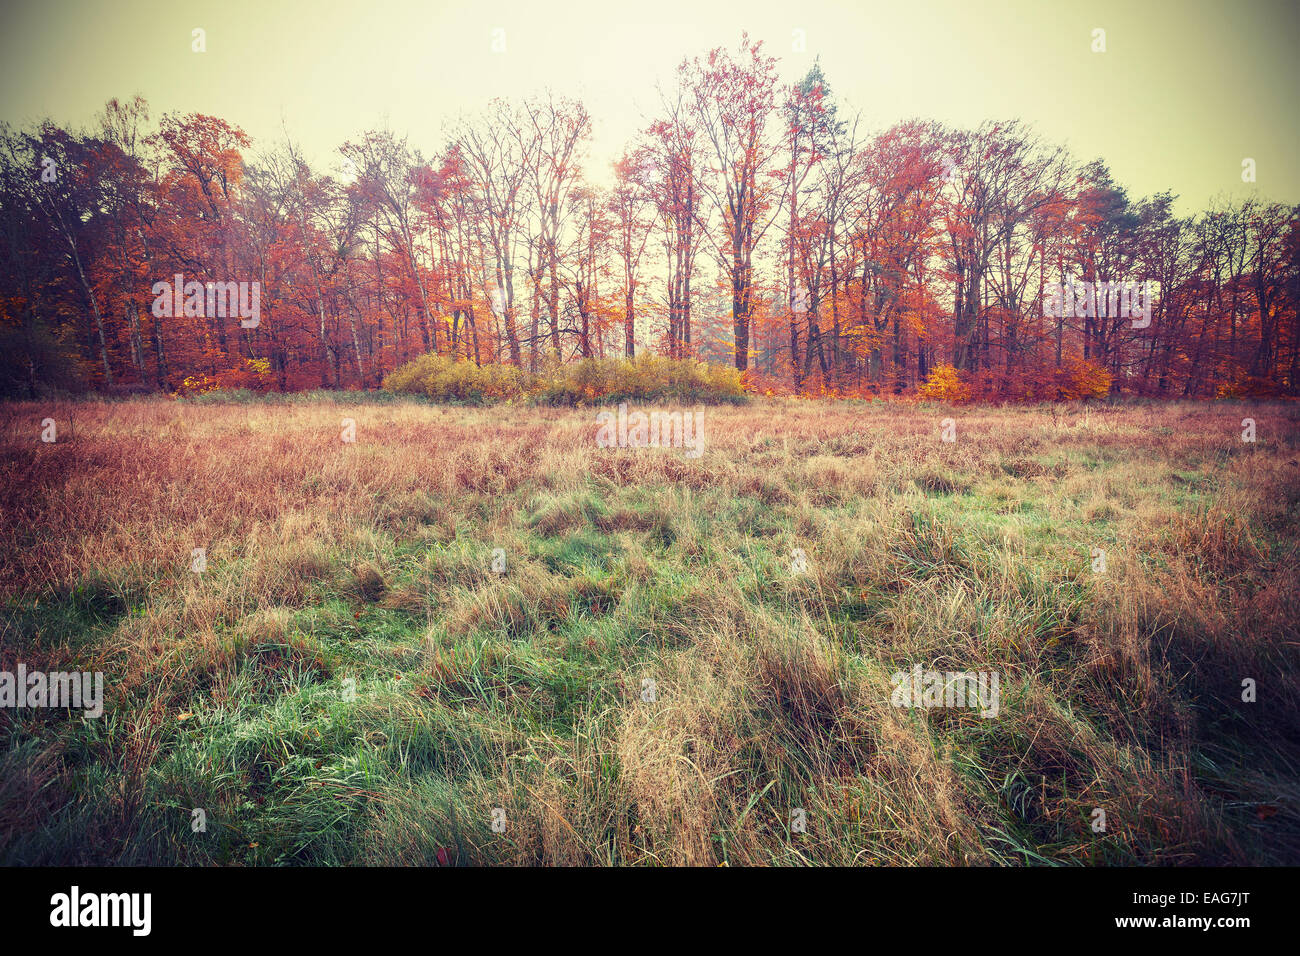 Vintage filtered photo of an autumn field. - Stock Image